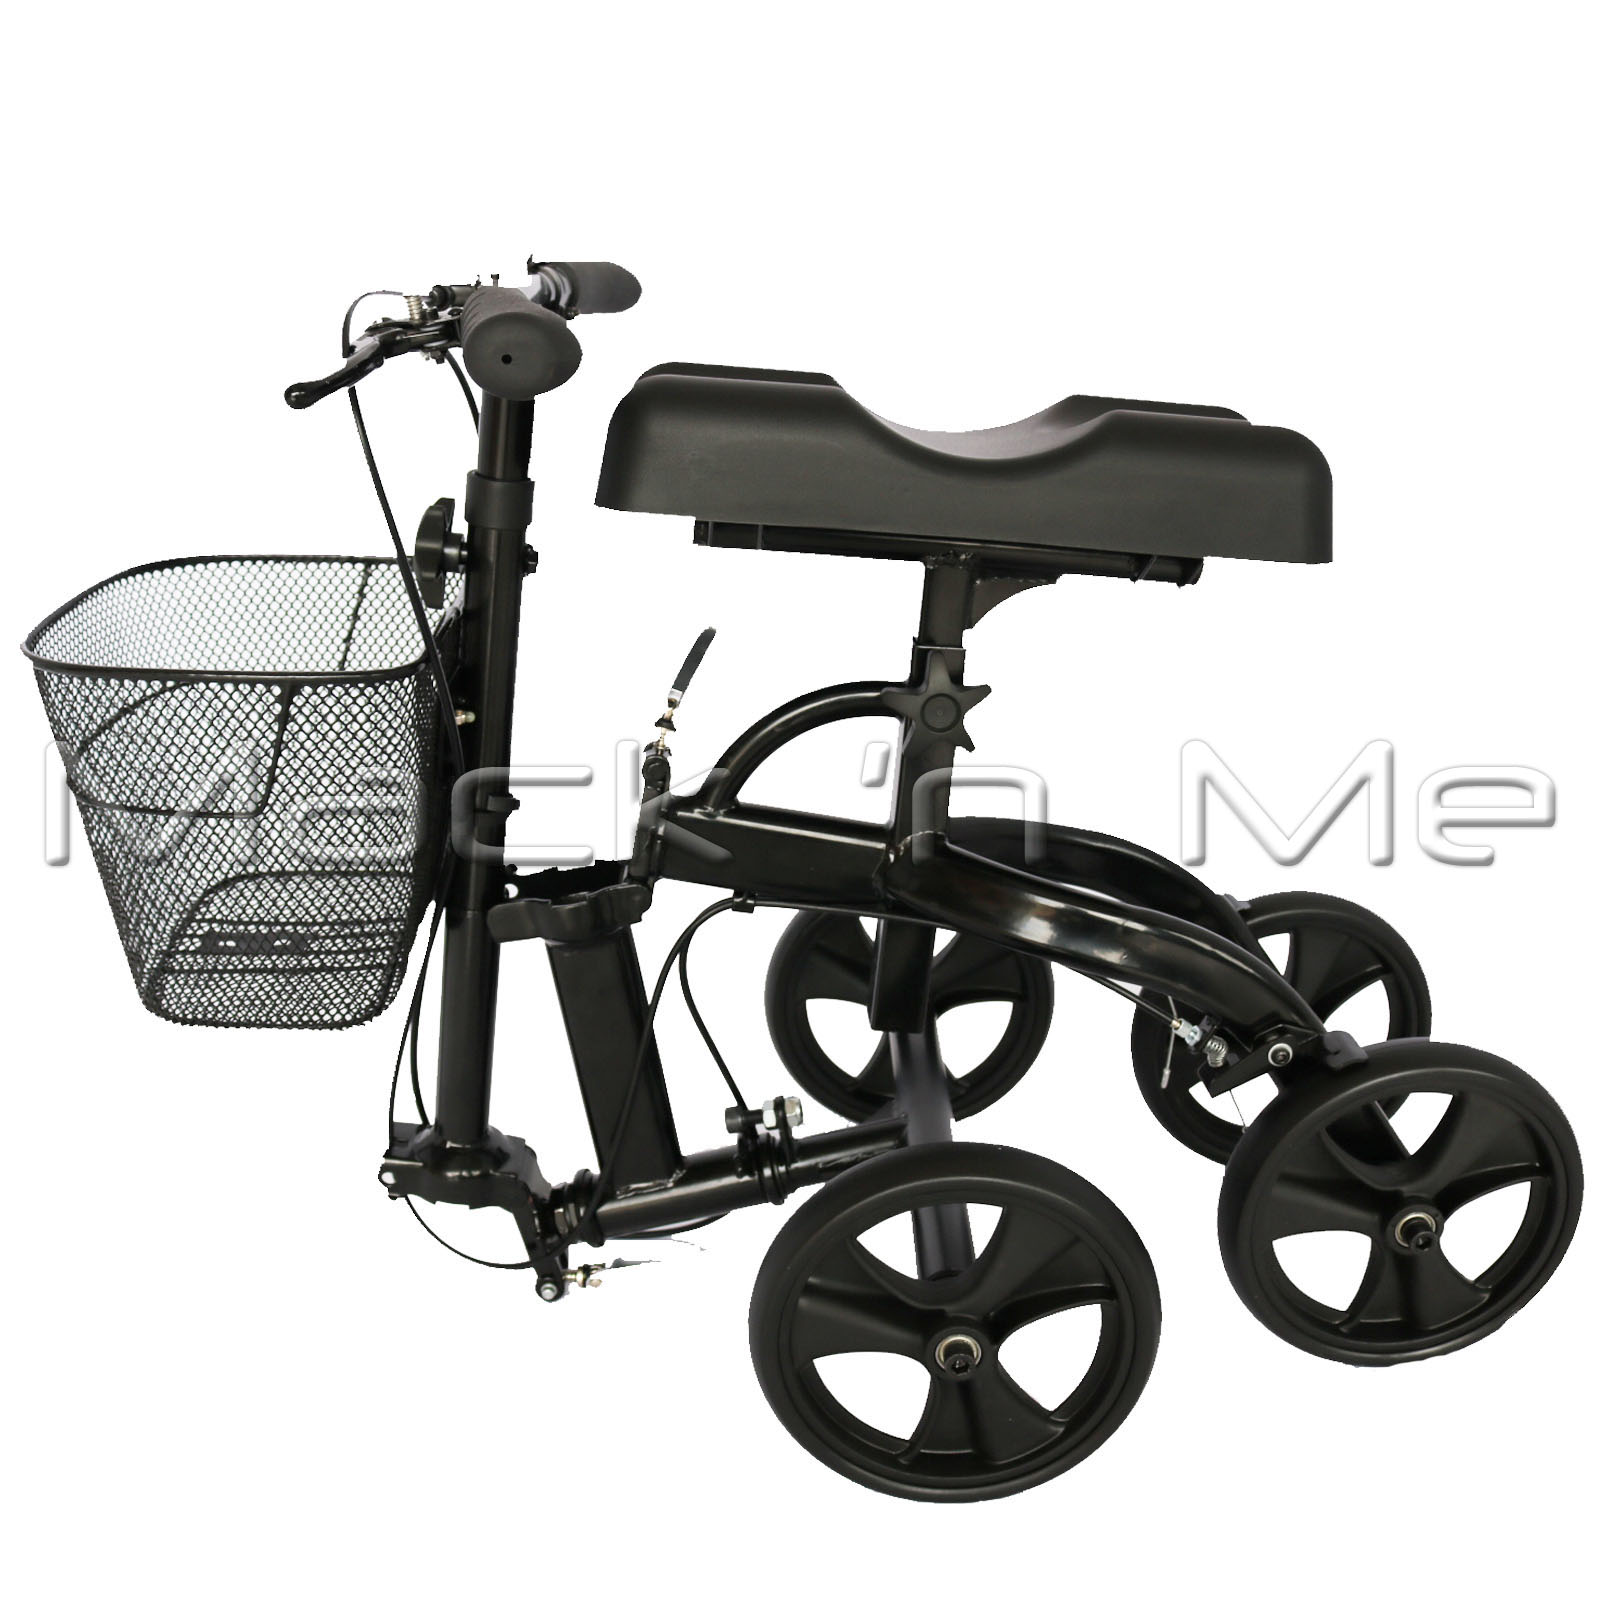 wheelchair knee oversized banquet chair covers walker scooter mobility alternative crutches